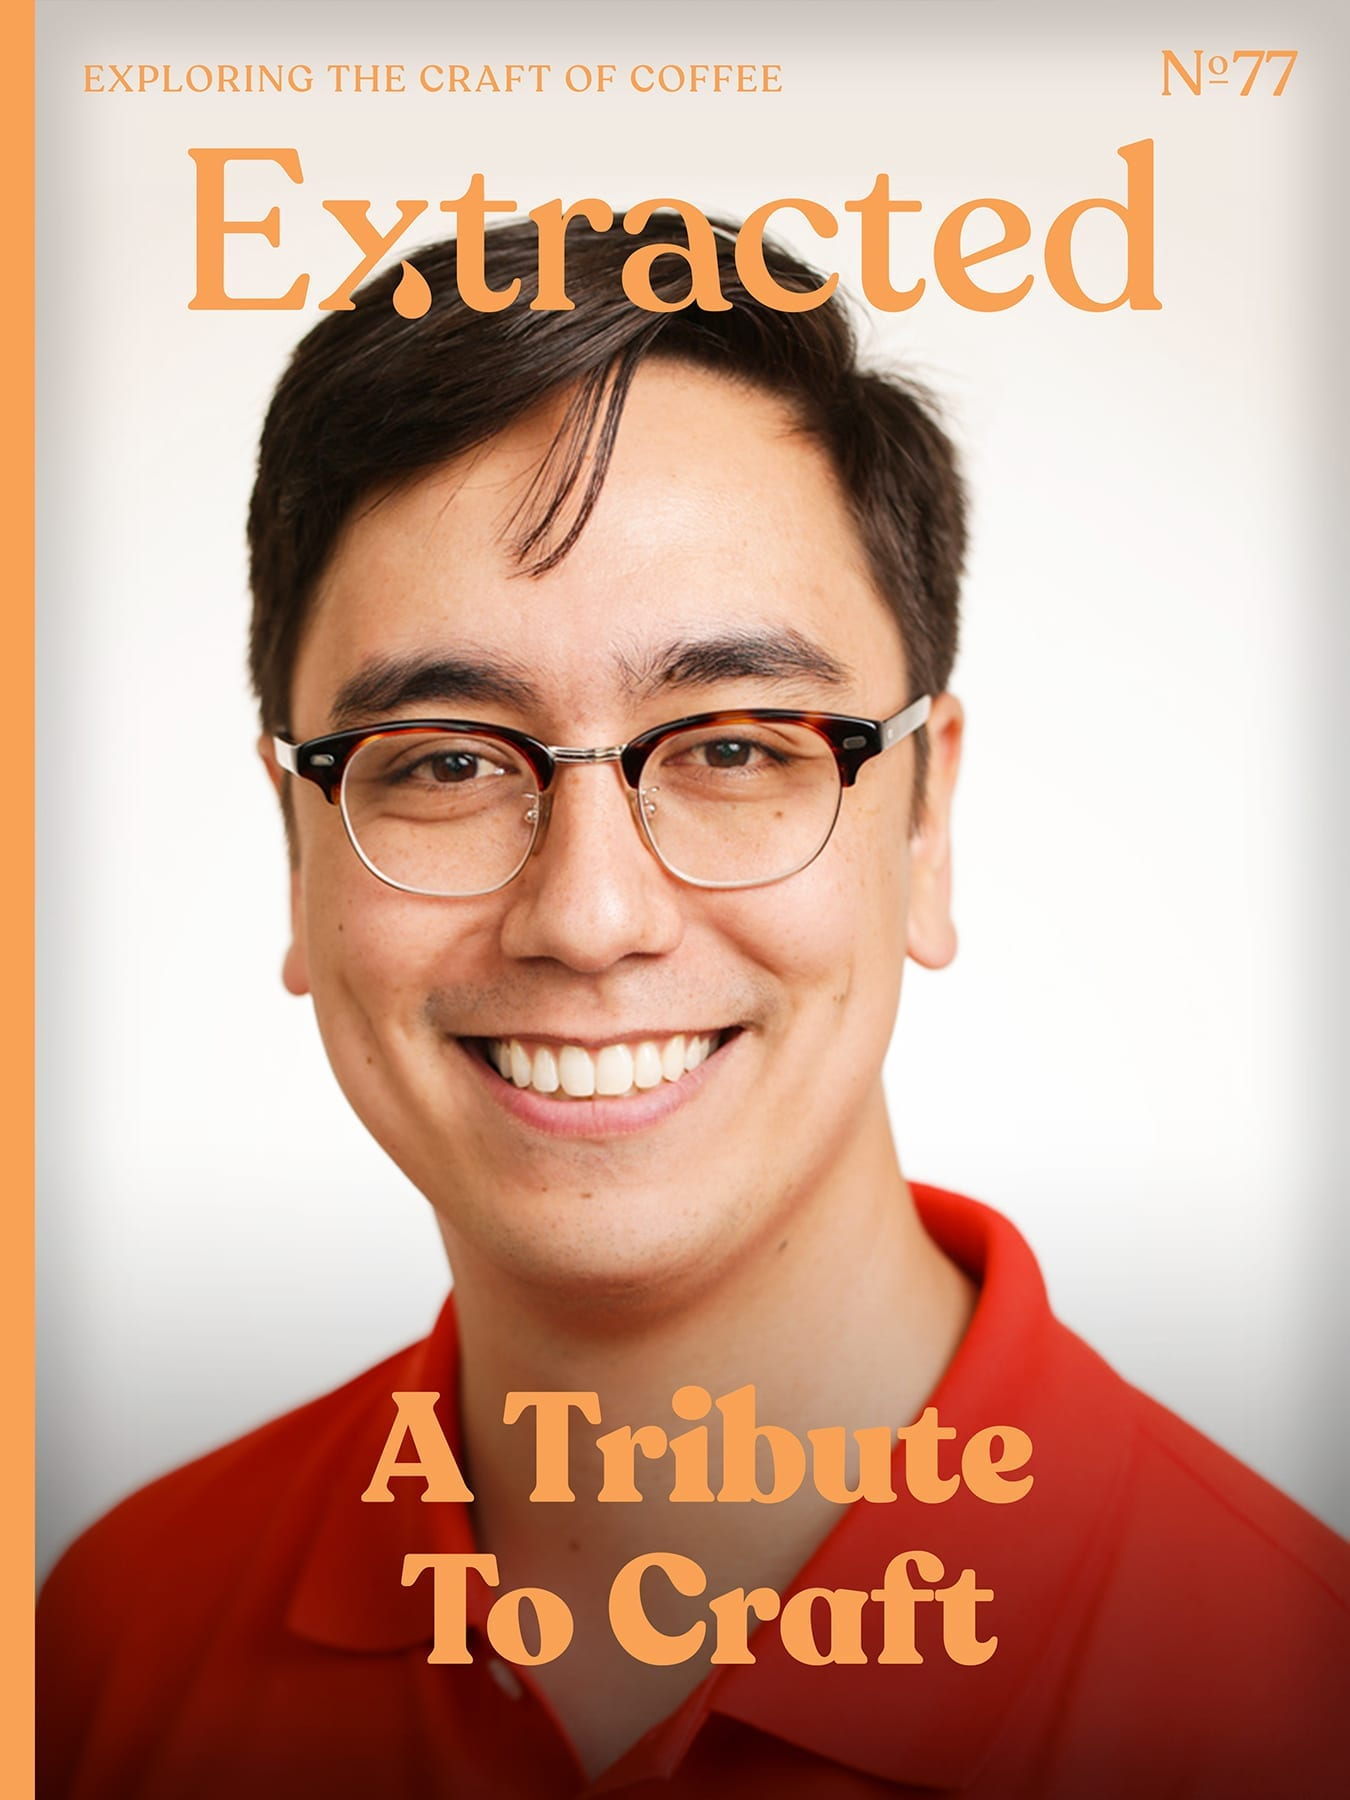 A Tribute to Craft - Issue 77 Extracted Magazine - Coffee Magazine